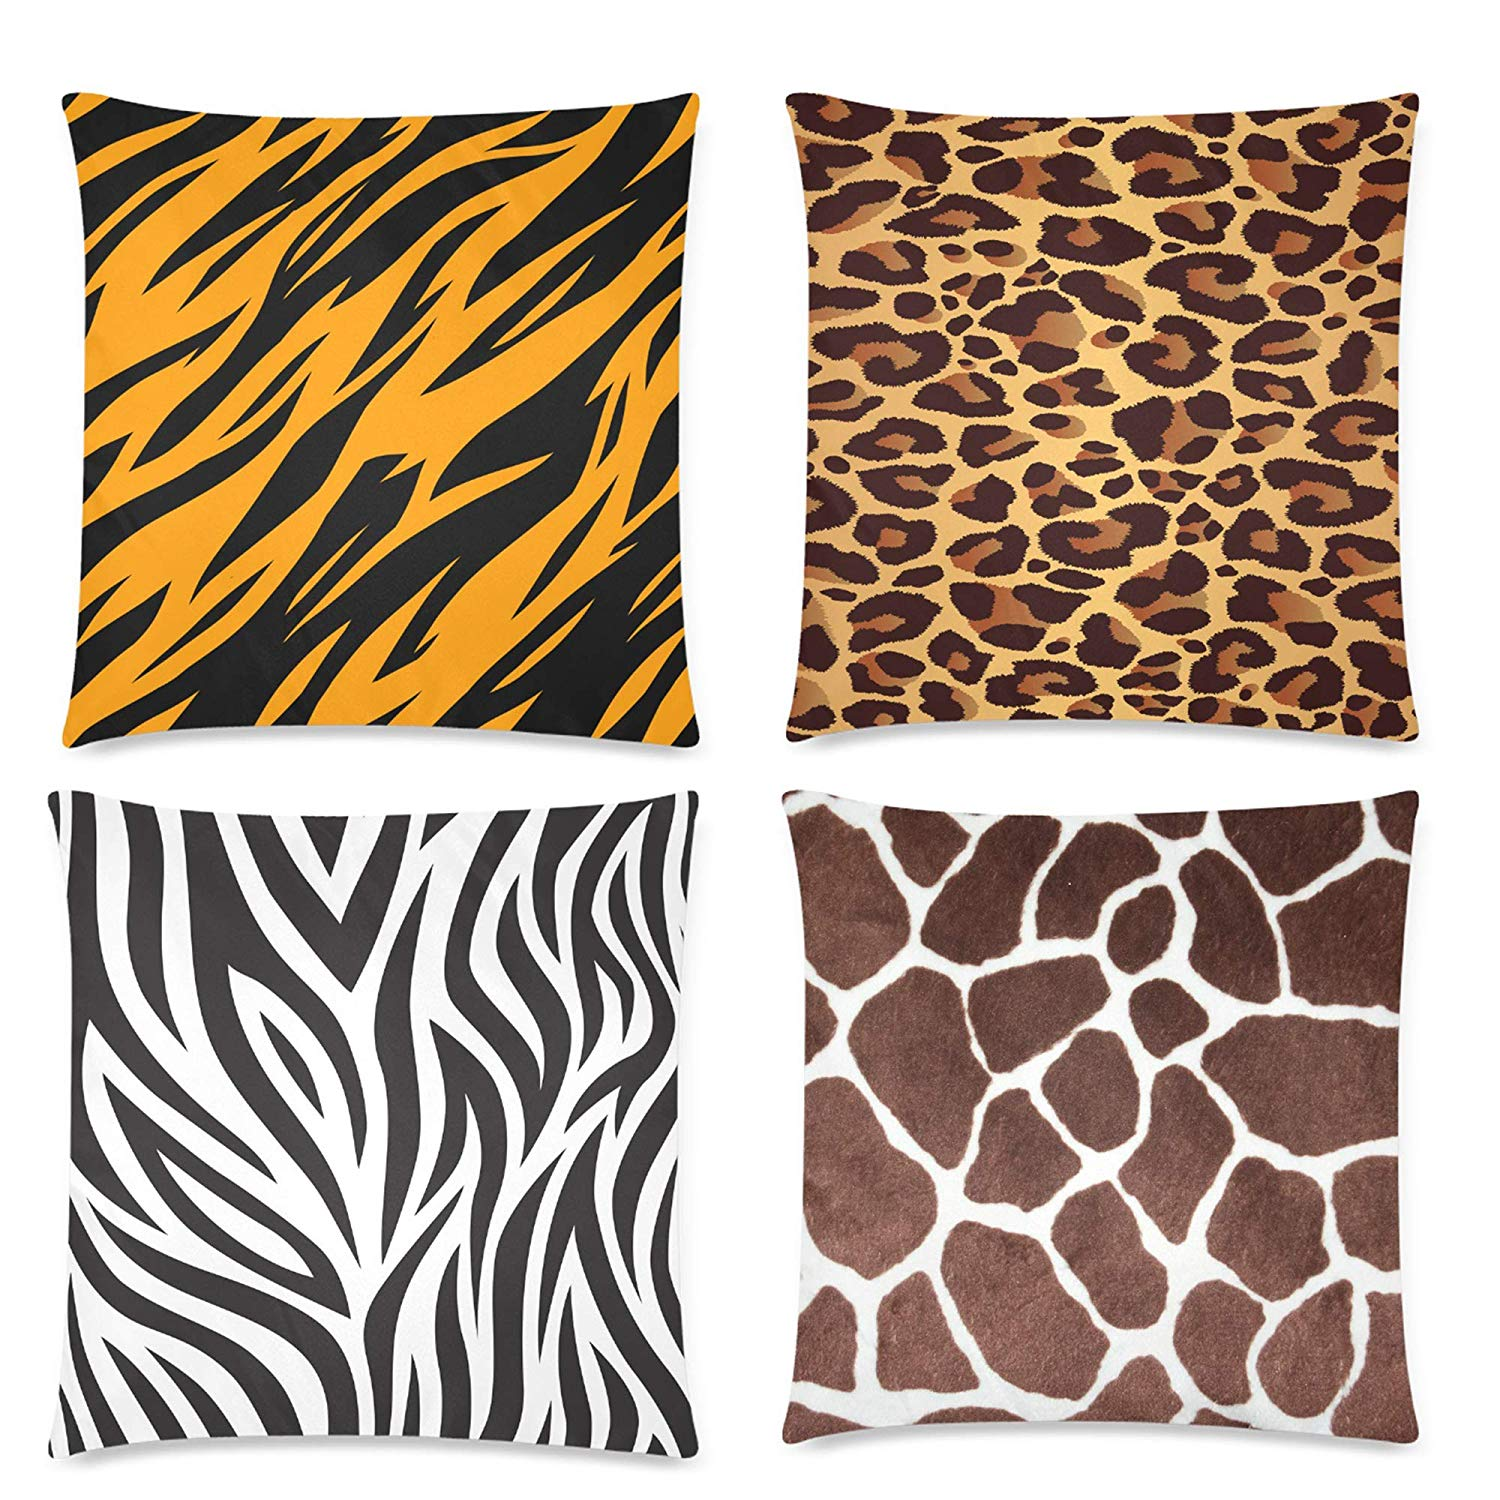 Gckg leopard giraffe tiger zebra skin throw pillow covers pillow cases animal print throw cushion cover18x18 inches4 pack